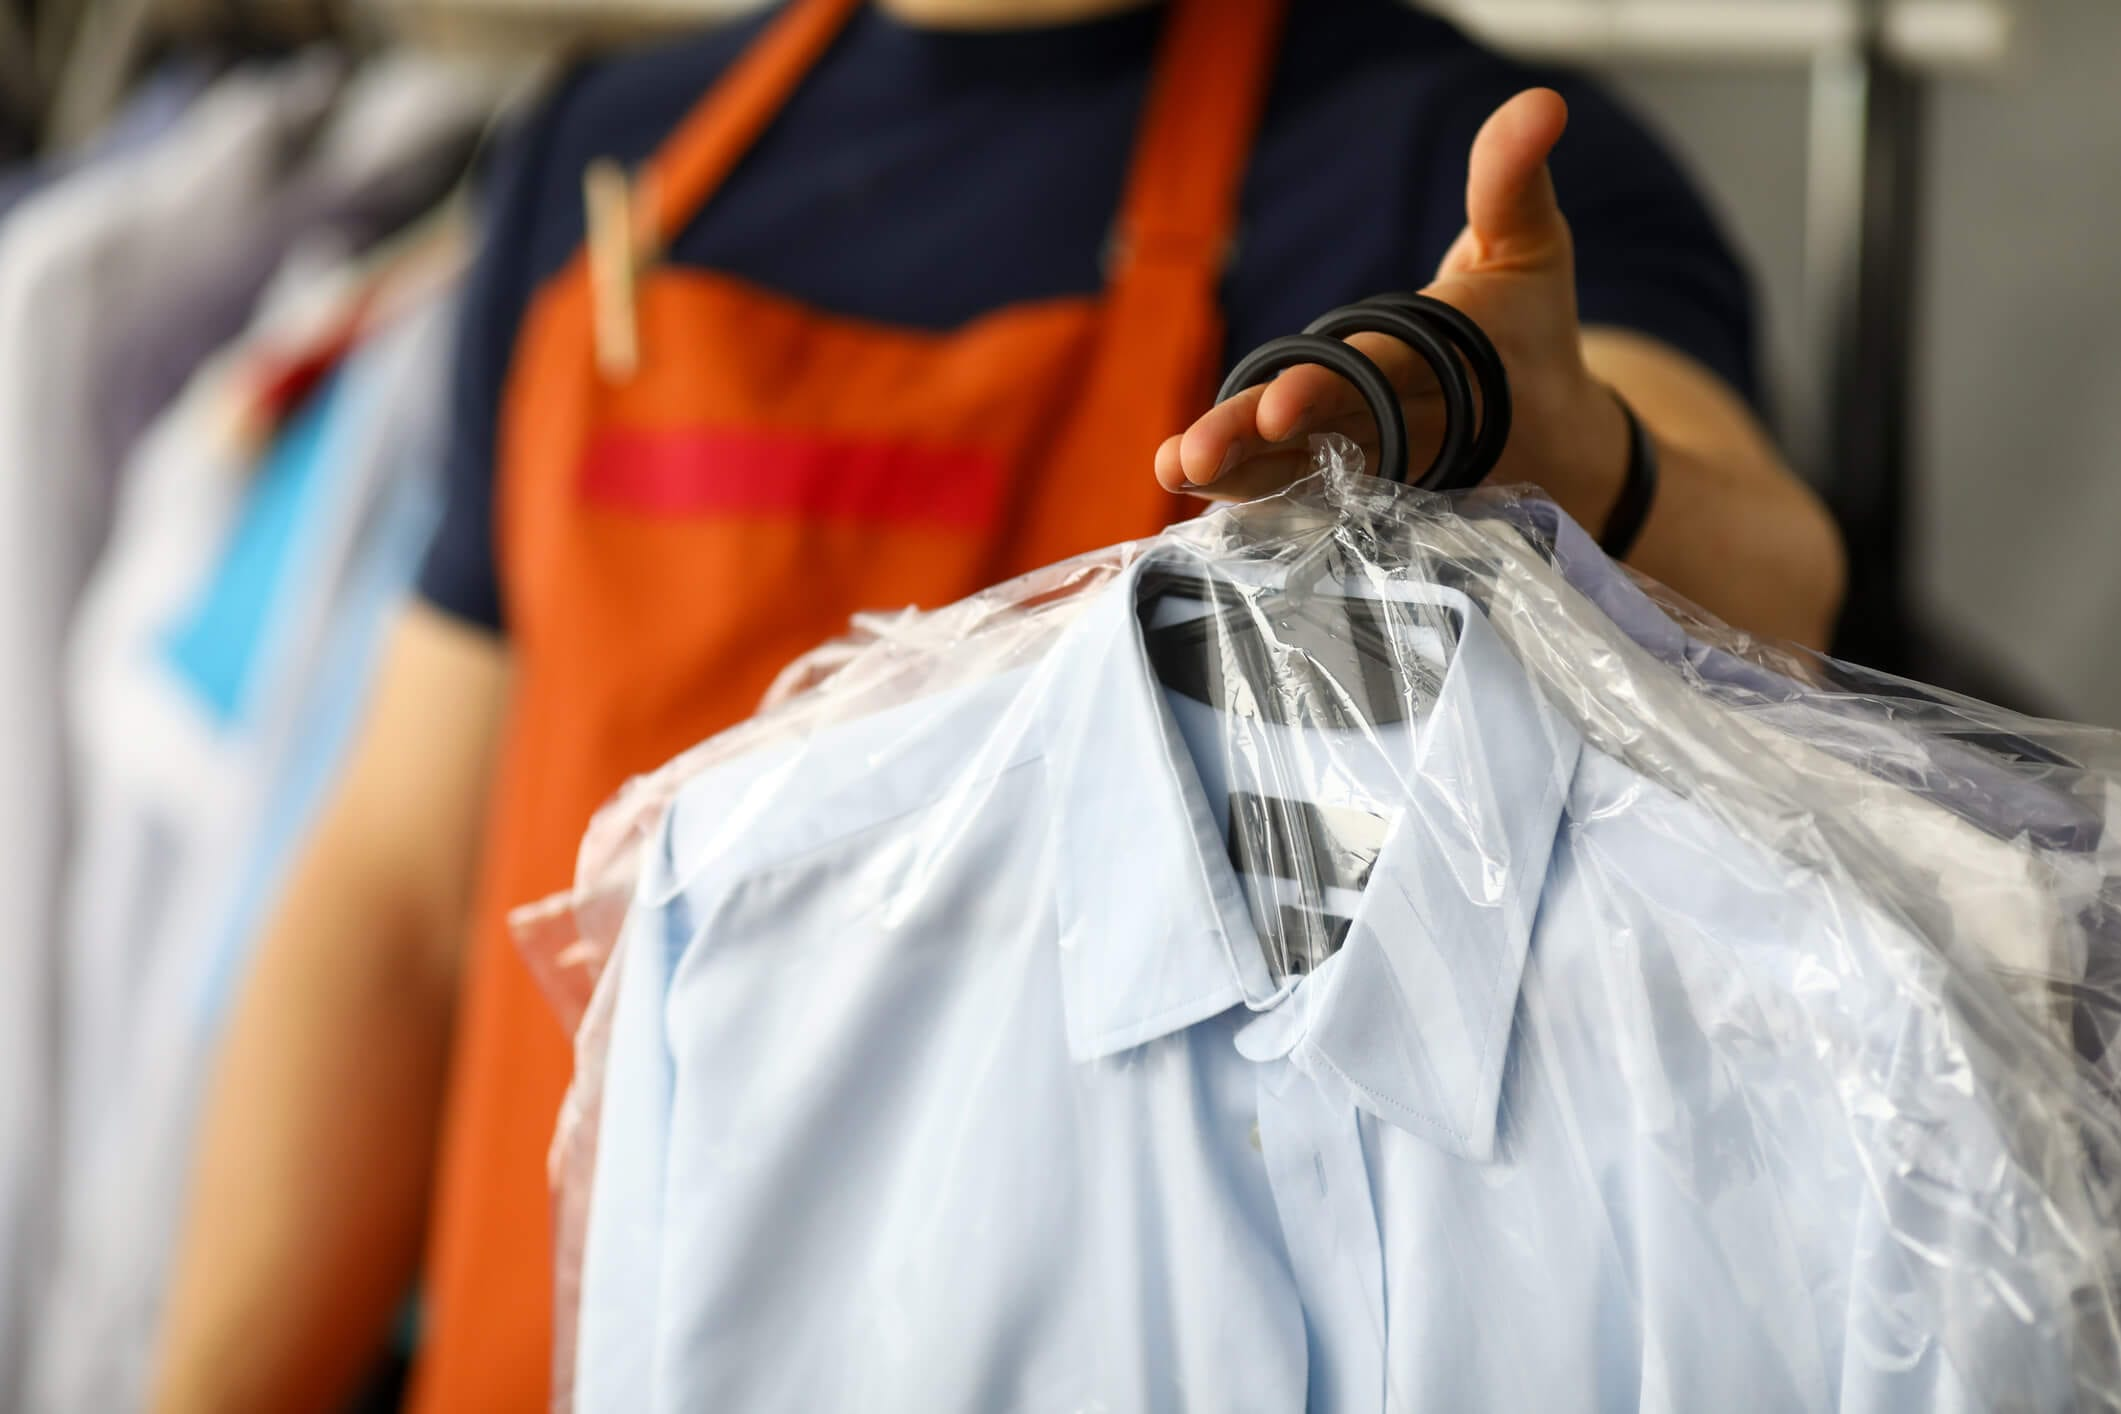 Man Holding Dry Cleaned Shirts on Hangers